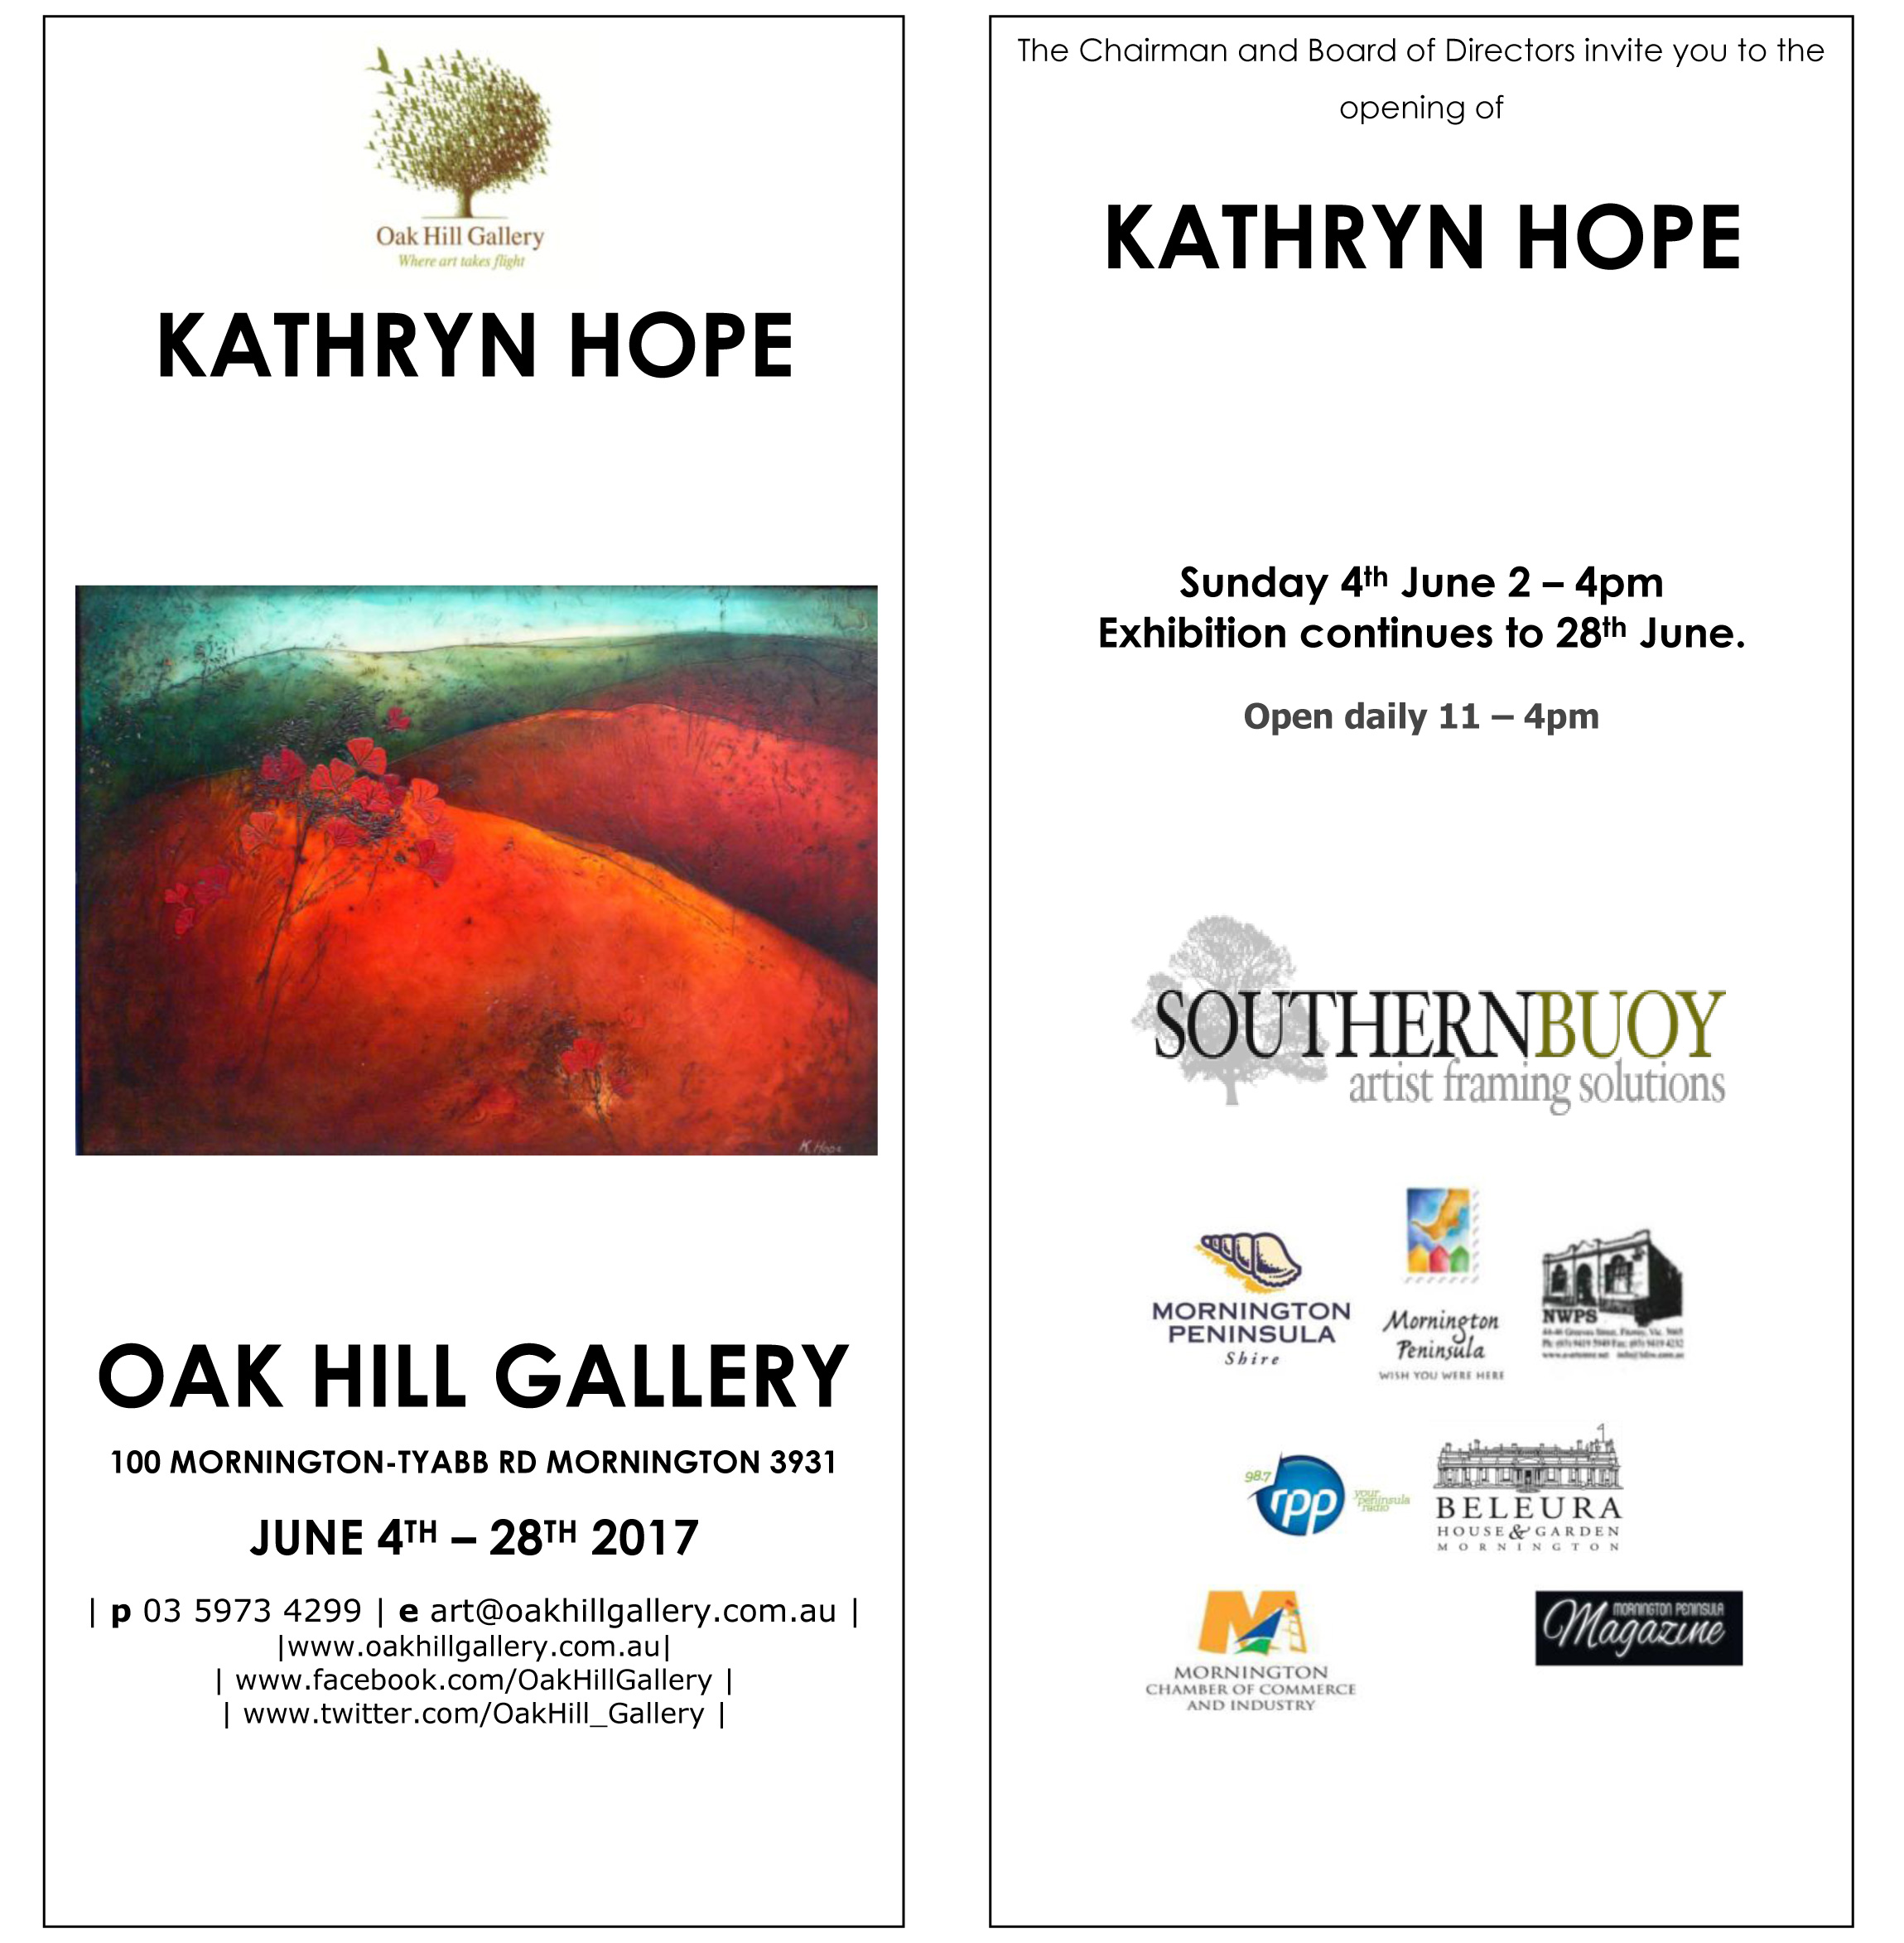 kathryn-hope-proof-1